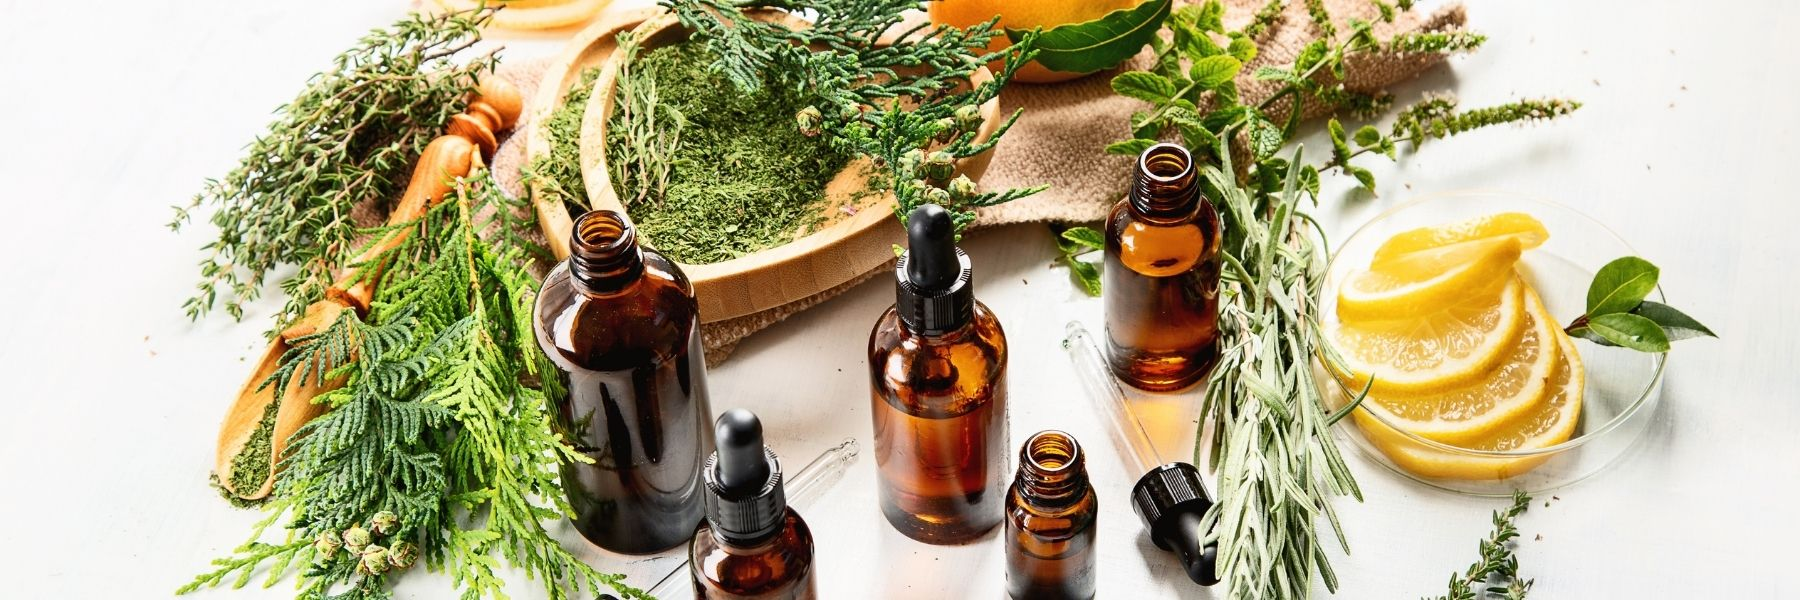 amber glass bottles of essential oils and herbs and lemon with wooden utensils Wild Planet Aromatherapy blog